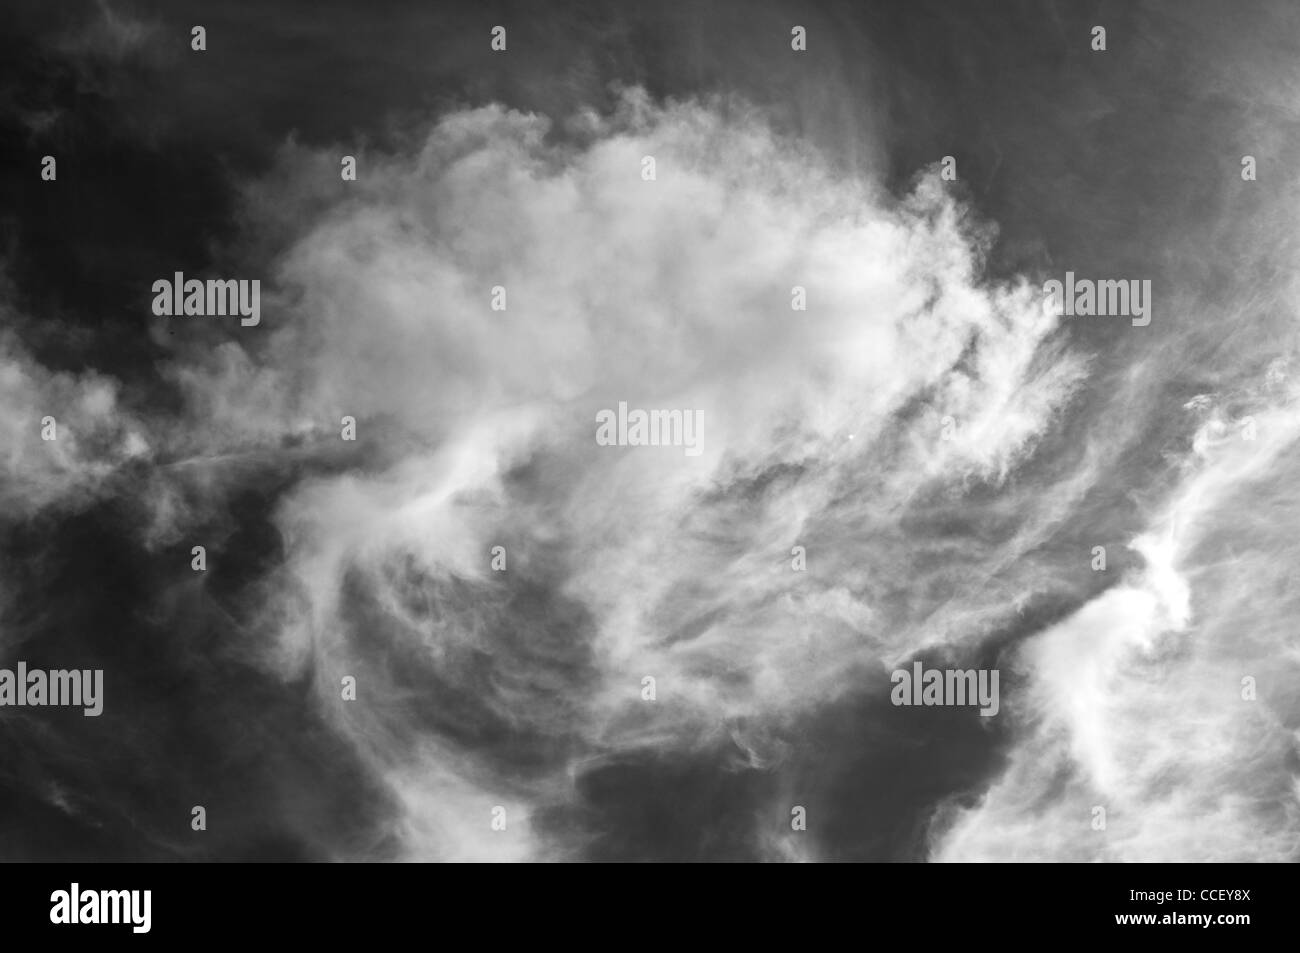 Sky and clouds in black and white - Stock Image